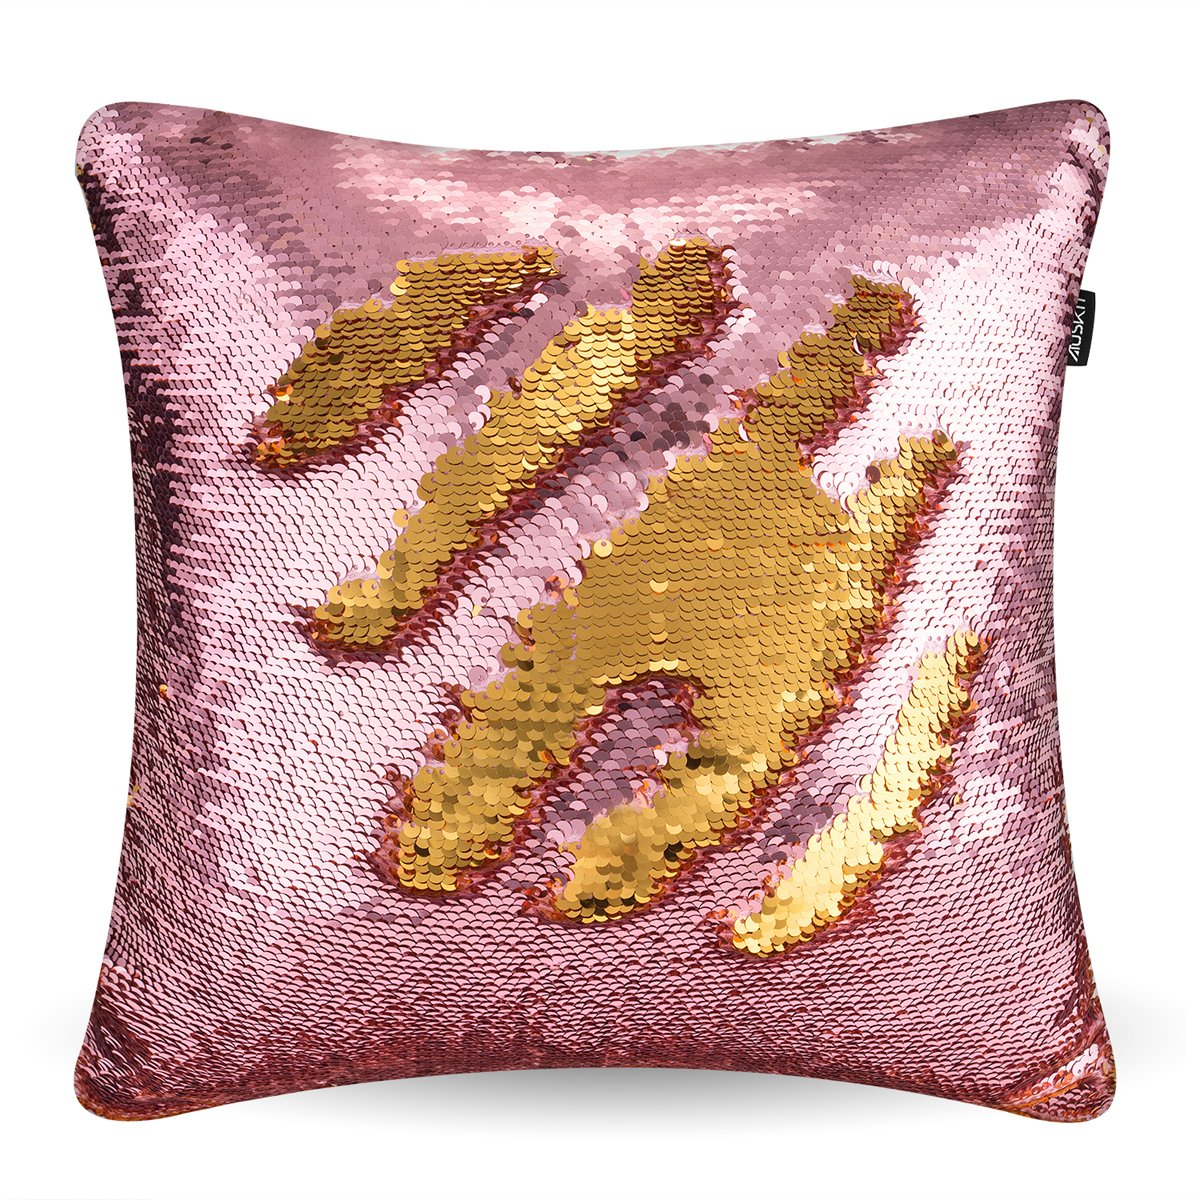 Reversible Sequins Mermaid Pillow Case - Two Colors Throw Cushion Case 4040cm(ONLY PILLOW COVER) Hermosa Pink and Shining Gold By AusKit